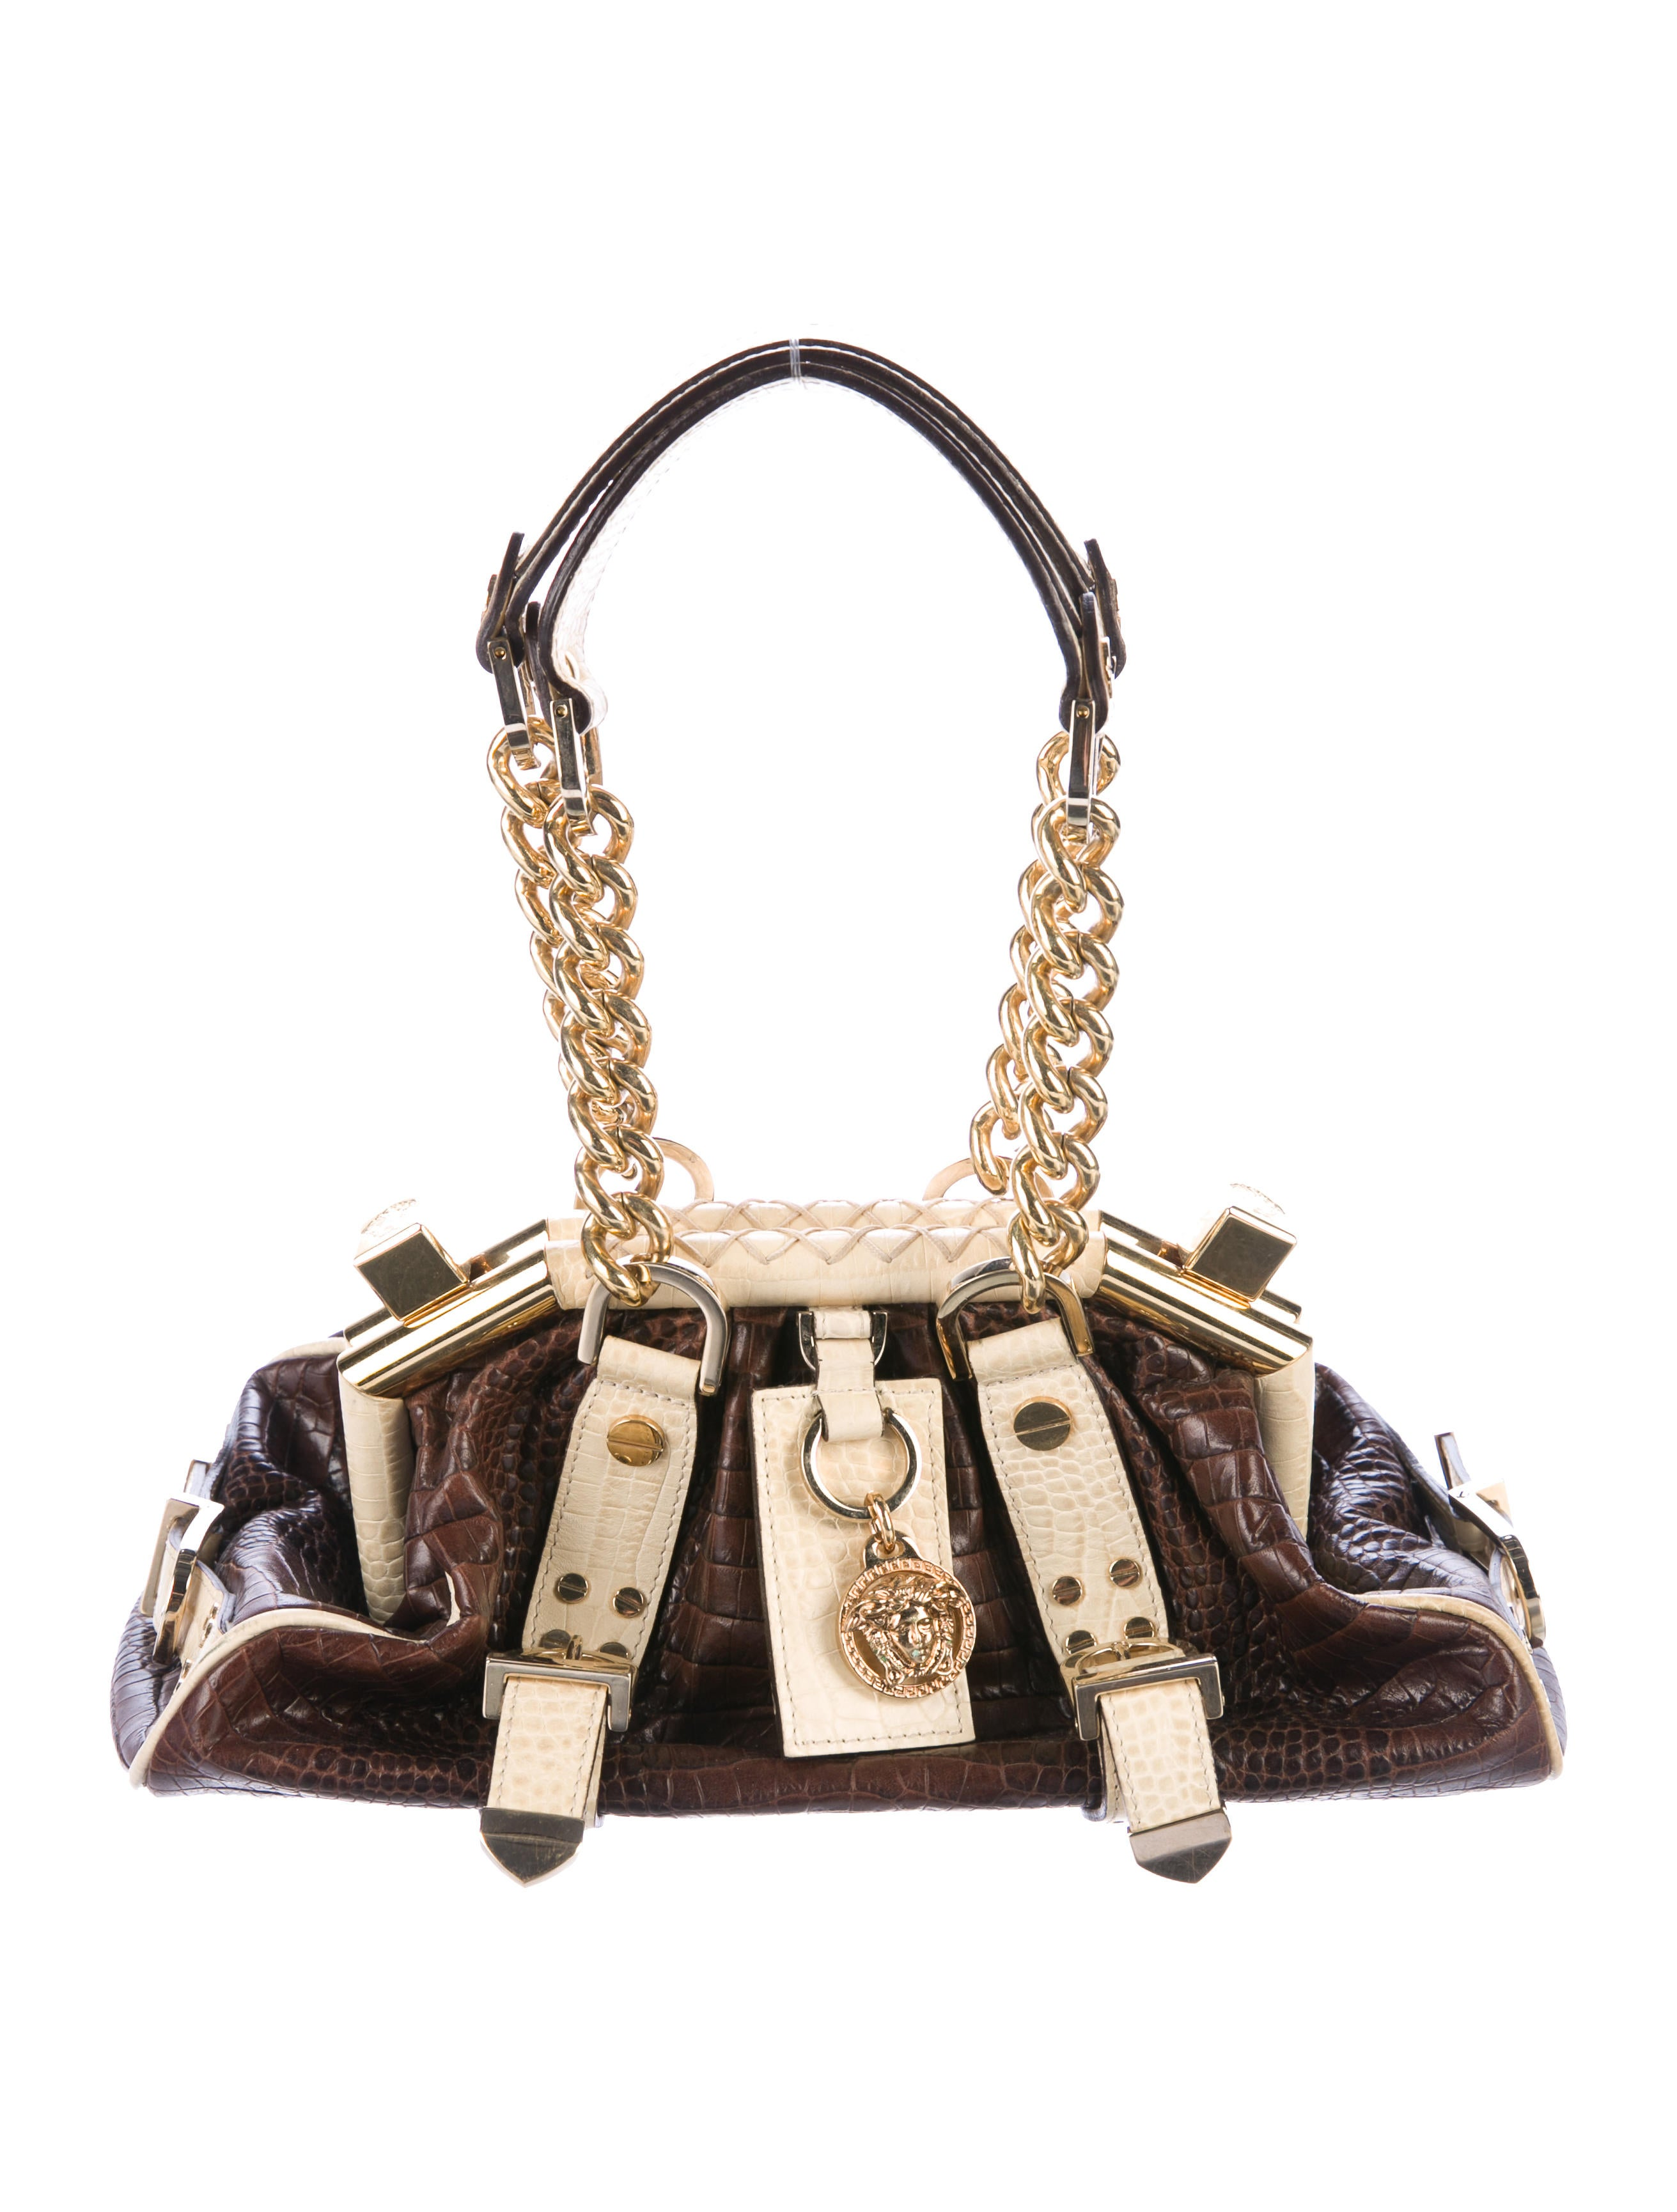 12077fe1b7 Versace Embossed Handle Bag - Handbags - VES31978